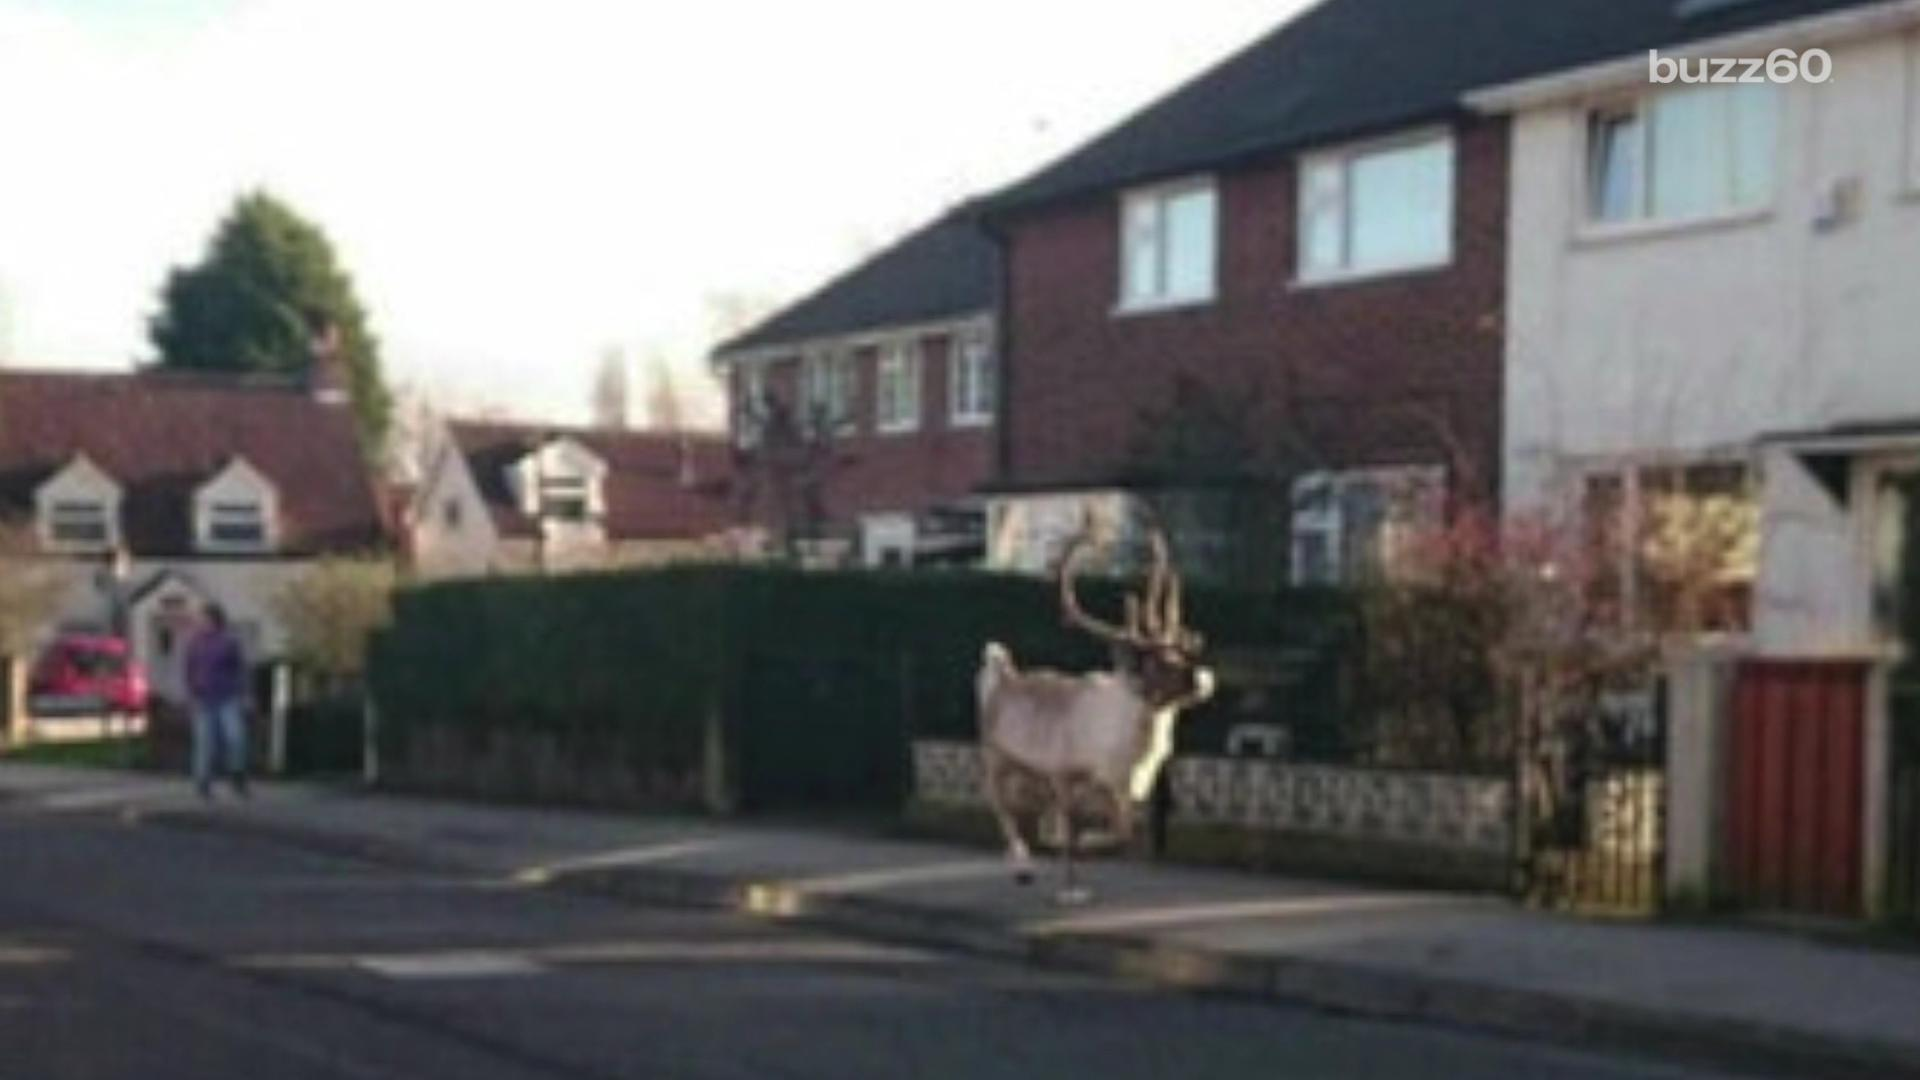 Santa loses one of his reindeer, causing chaos in the streets